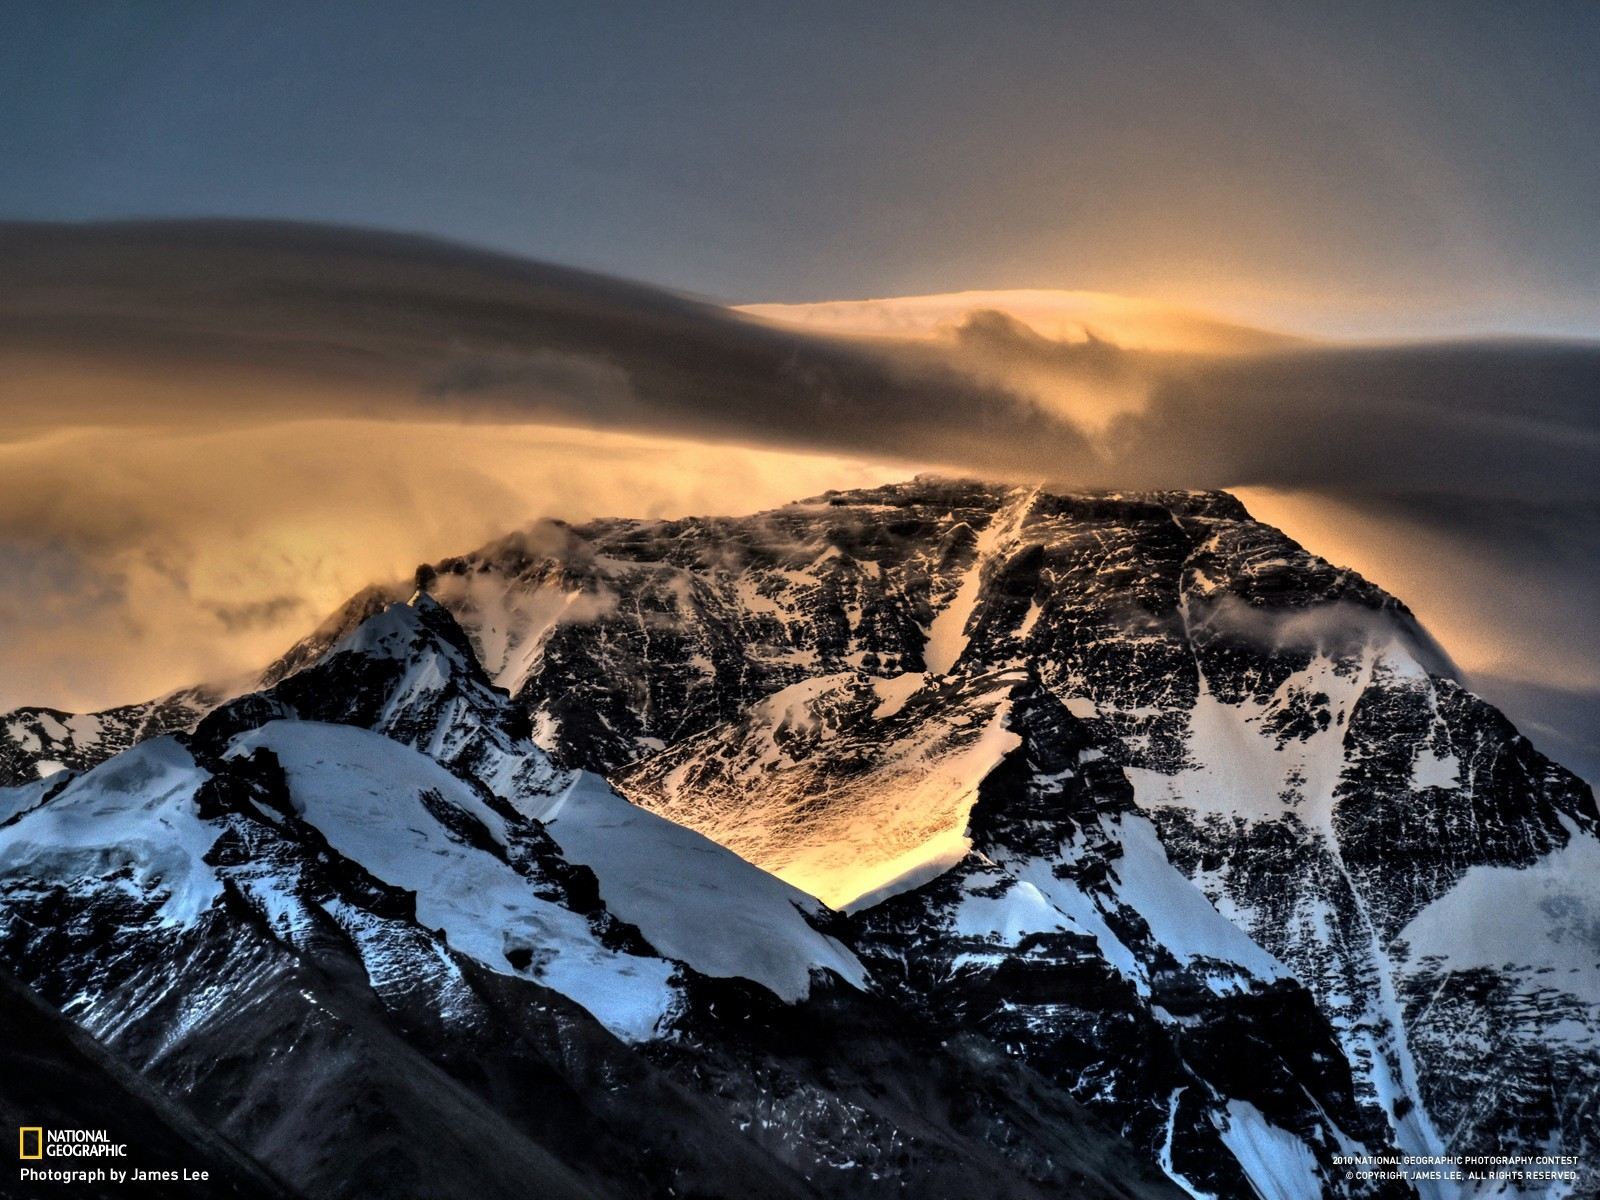 national geographic Mount Everest HD Wallpaper